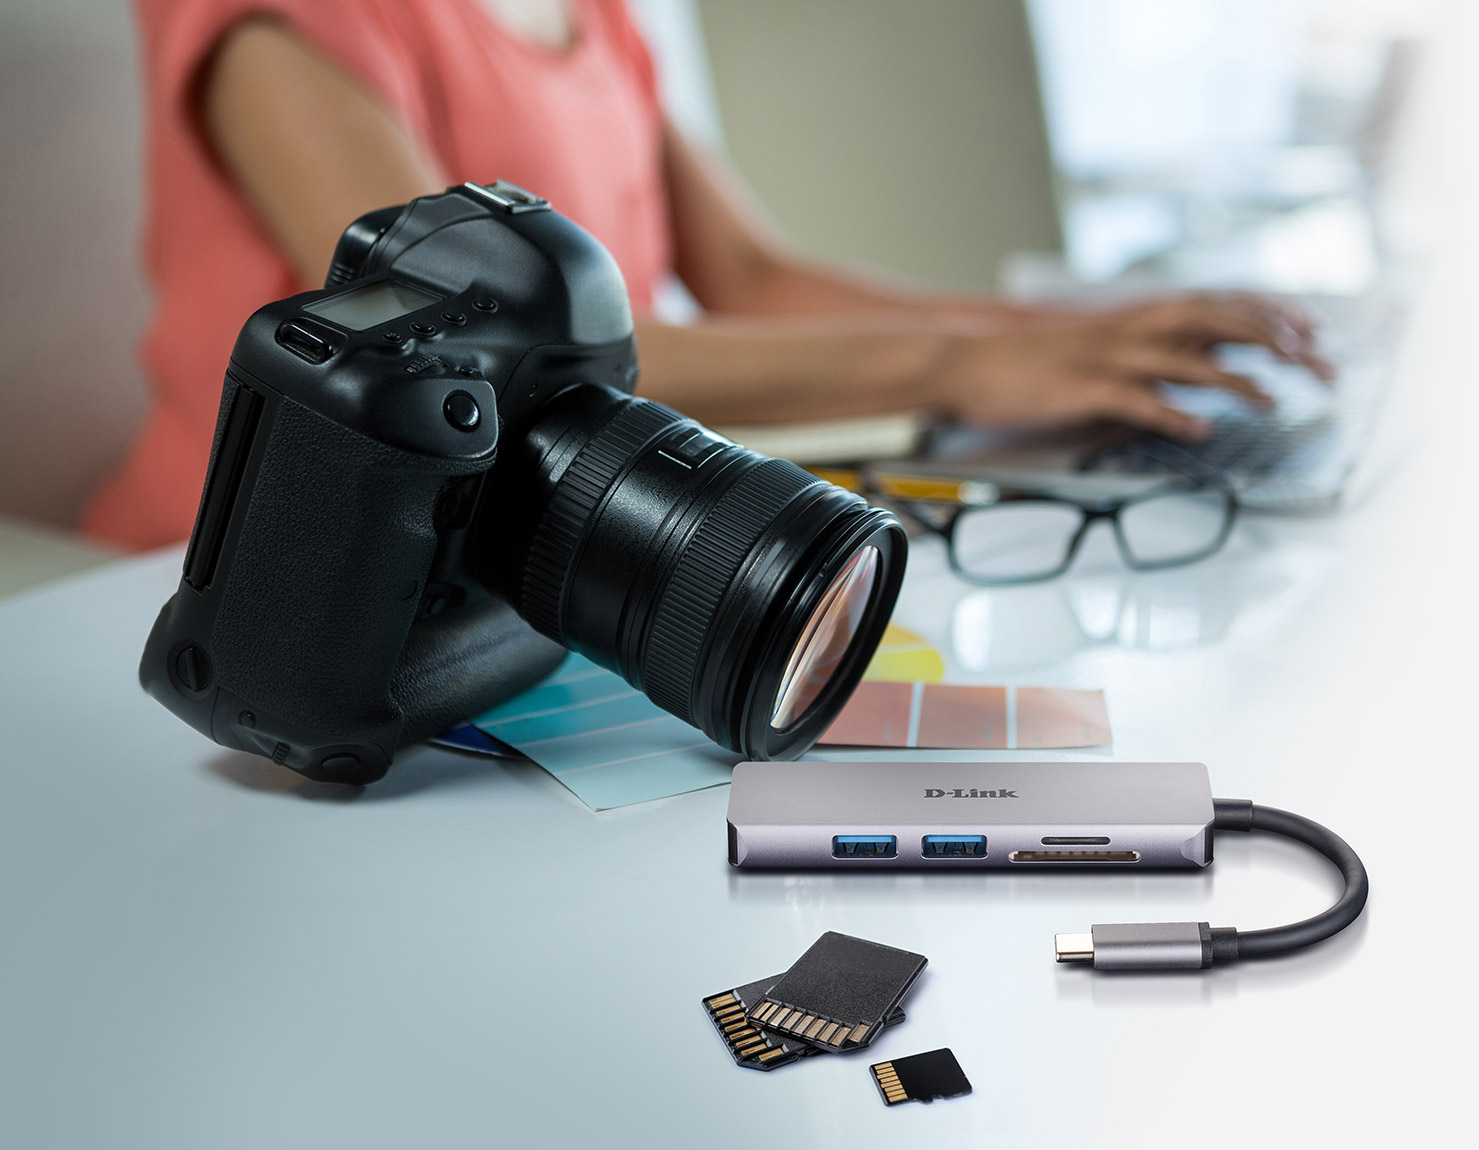 DUB-M530 5-in-1 USB-C Hub with HDMI/Card Reader next to a camera